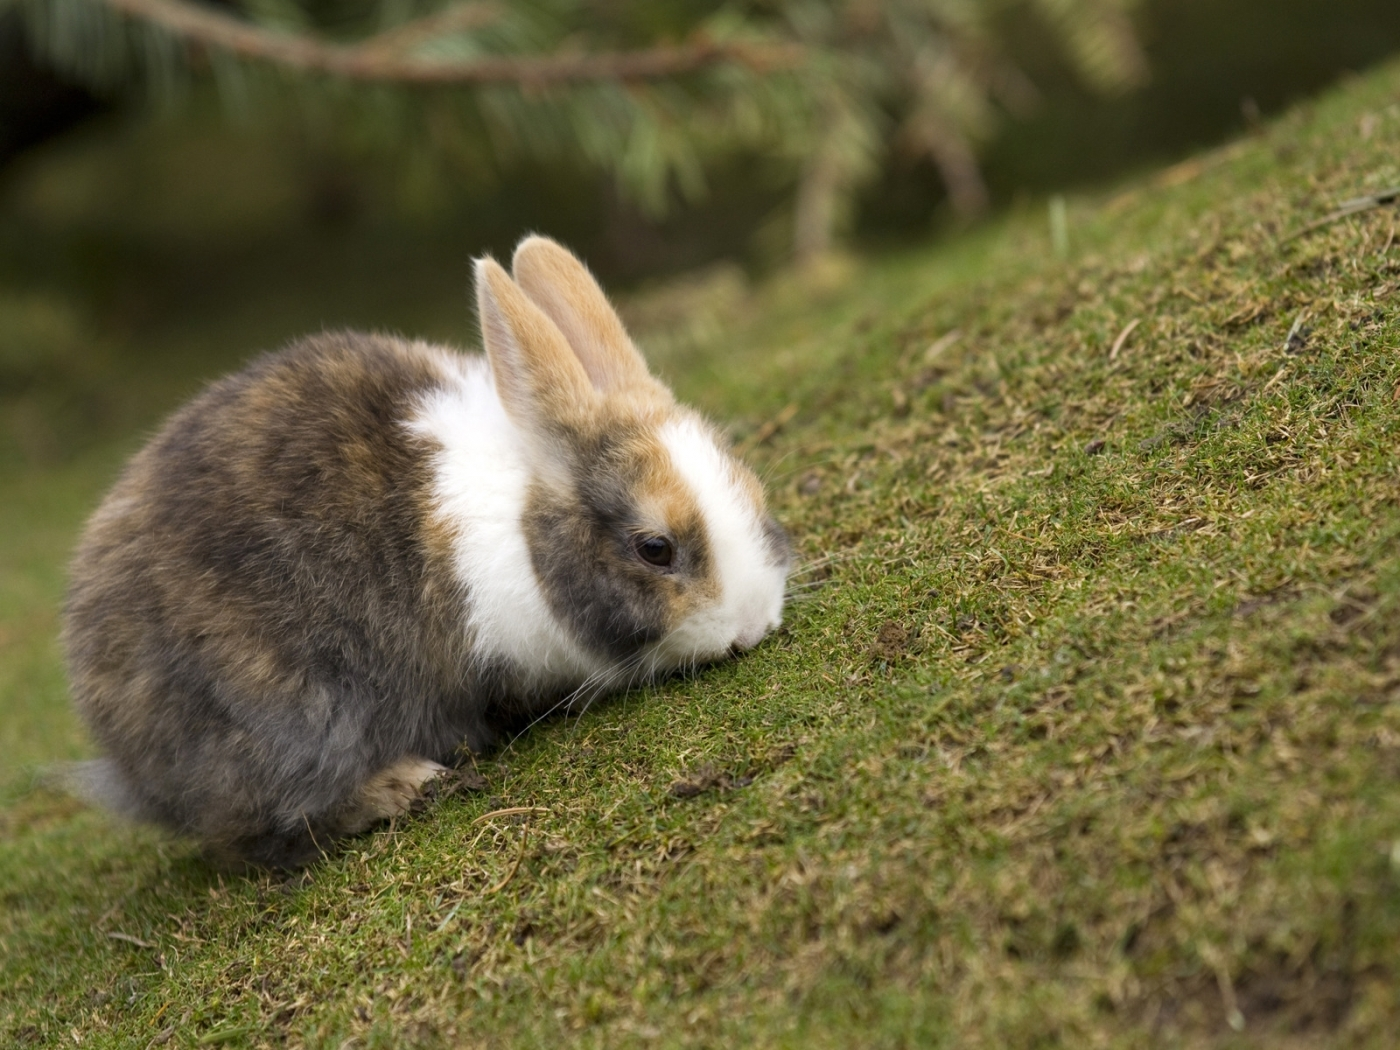 29153 download wallpaper Animals, Rabbits screensavers and pictures for free